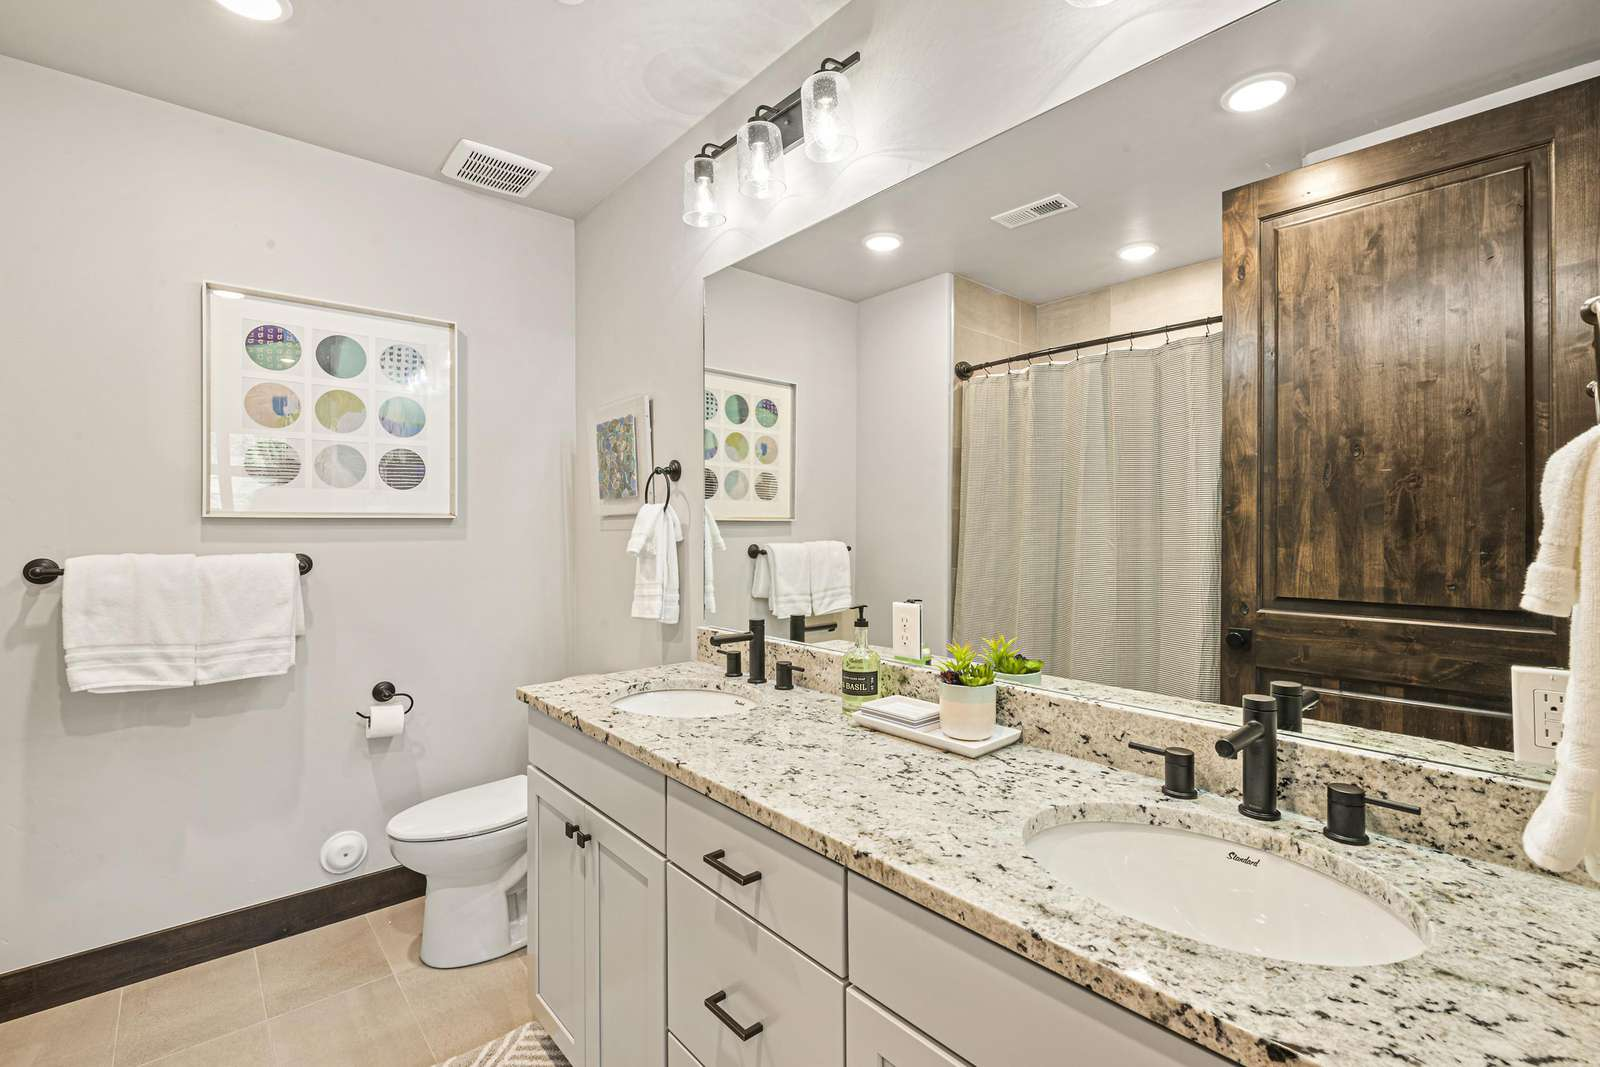 En suite bathroom (to guest bedroom) with double vanity and large bathtub and shower